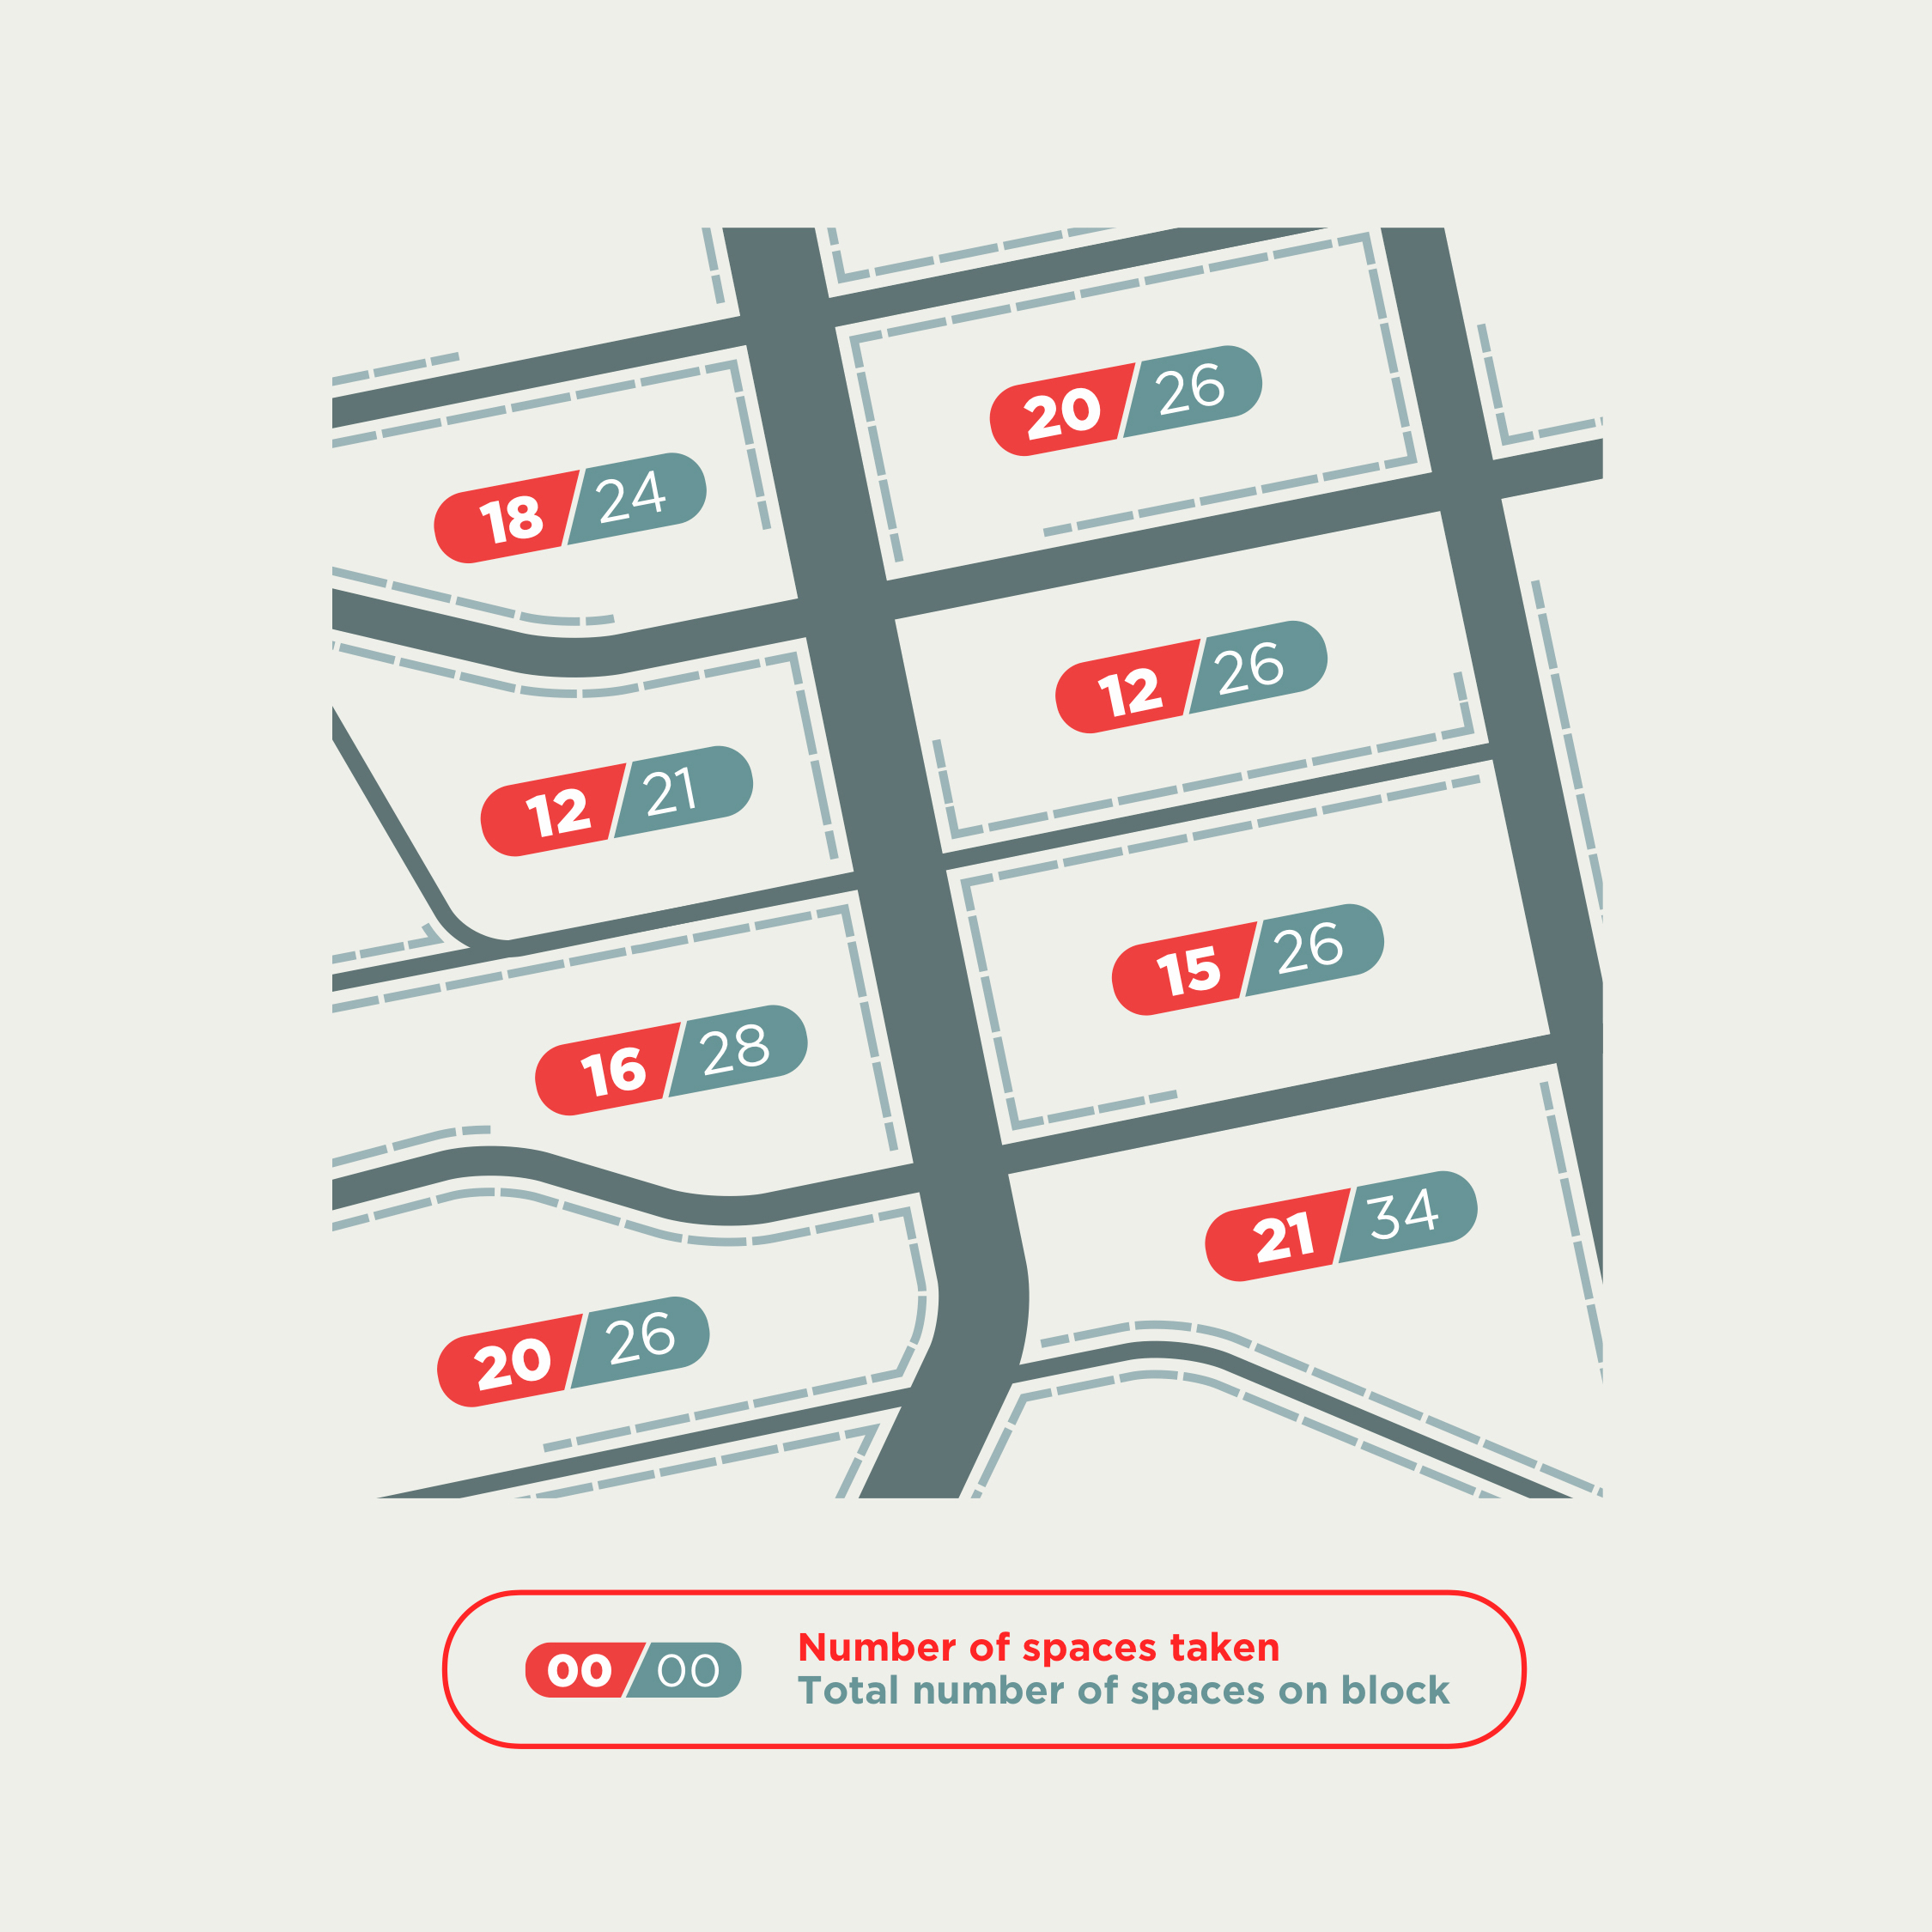 An illustration that compares the number of parking spaces are available on a city block